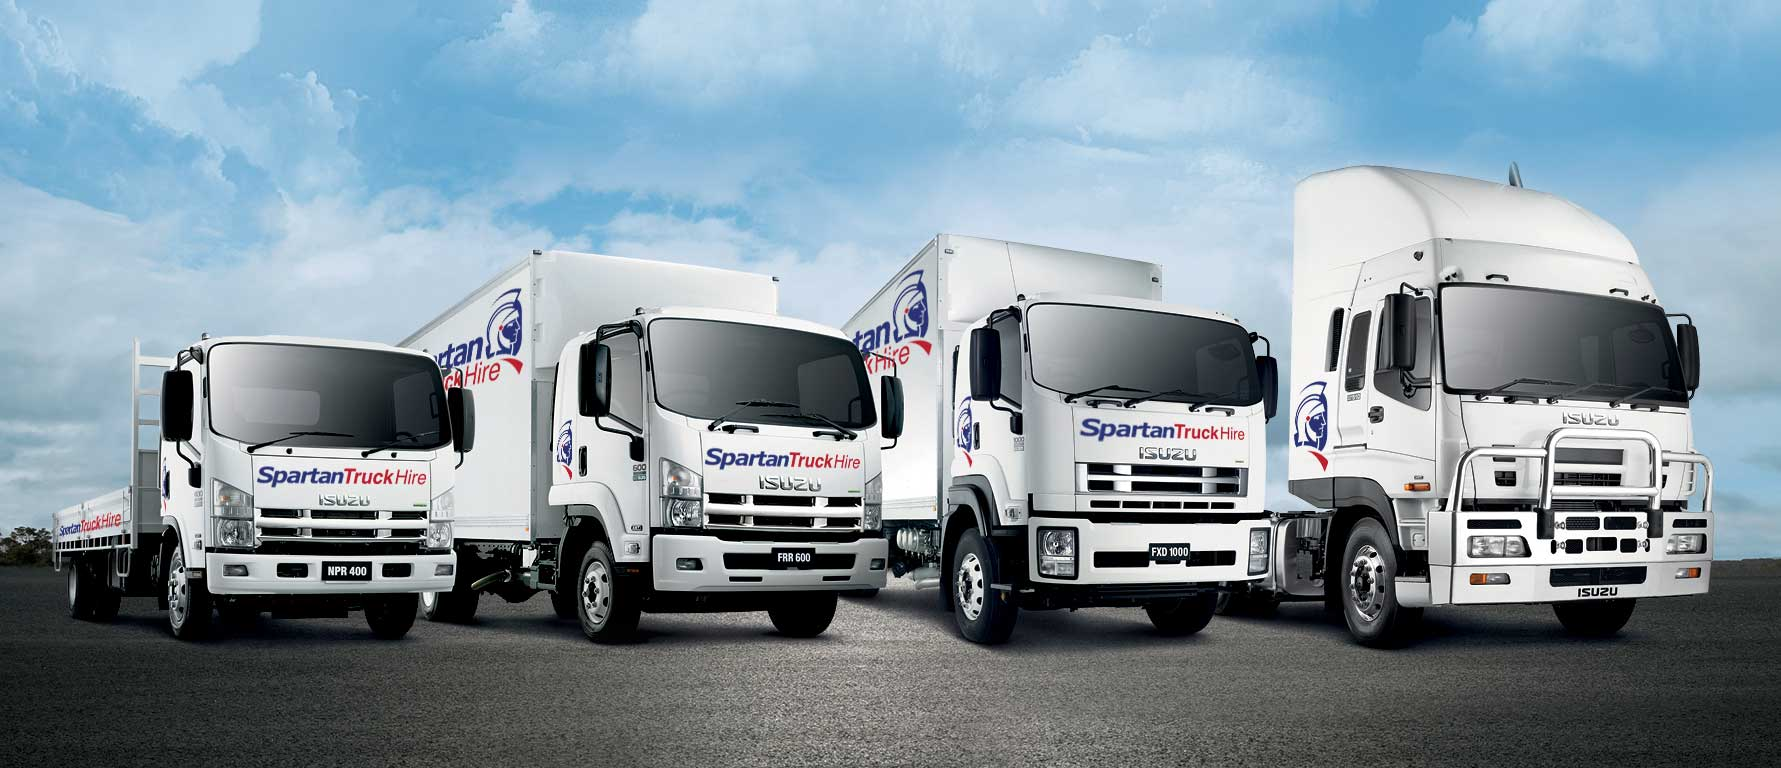 How to Save Time While Polishing Truck Wheels